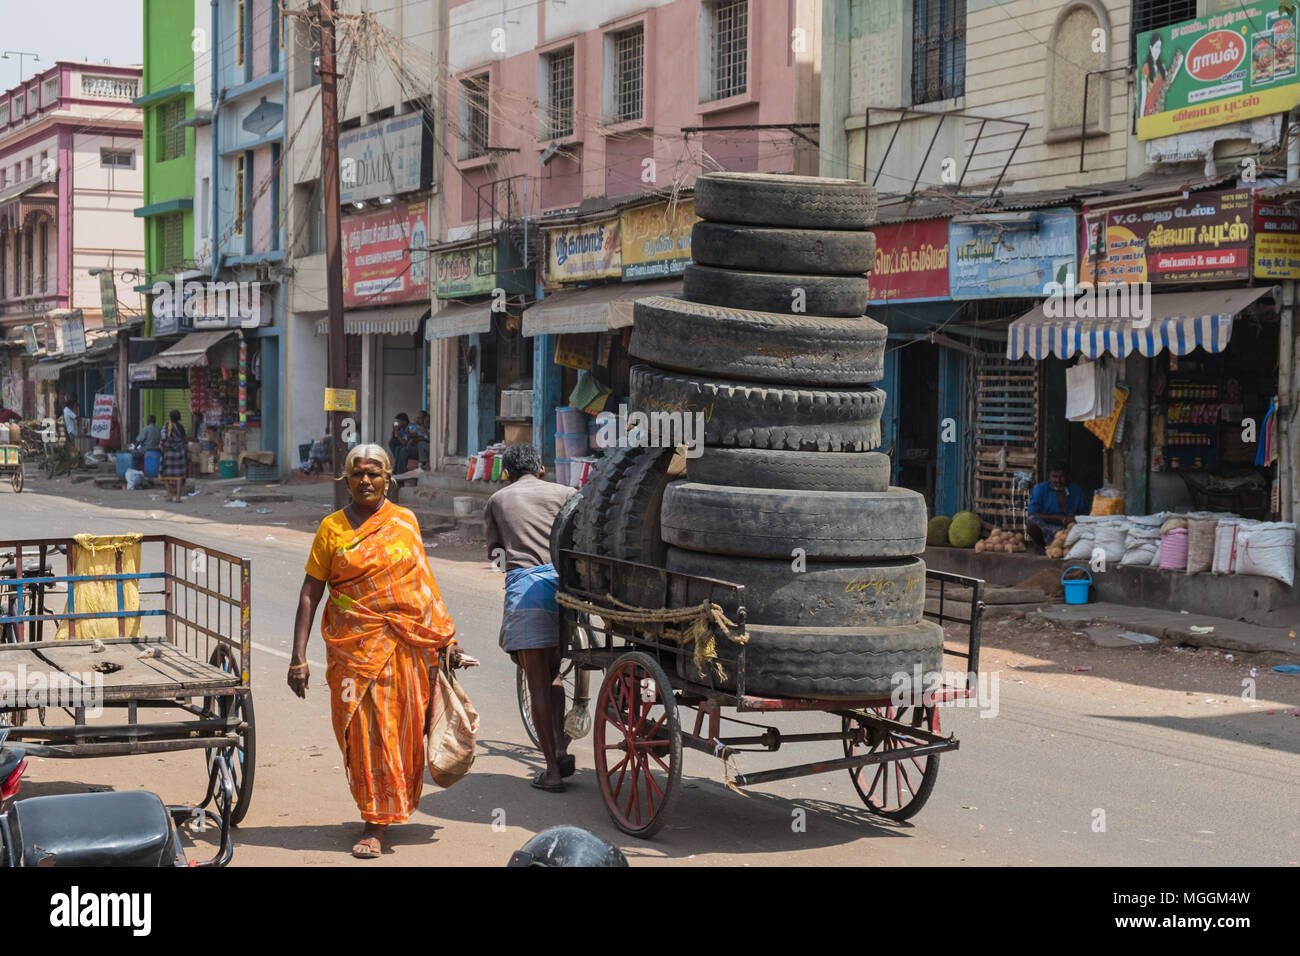 Madurai, India – March 9, 2018: Unidentified porter transporting a load of worn tires through the city centre - Stock Image